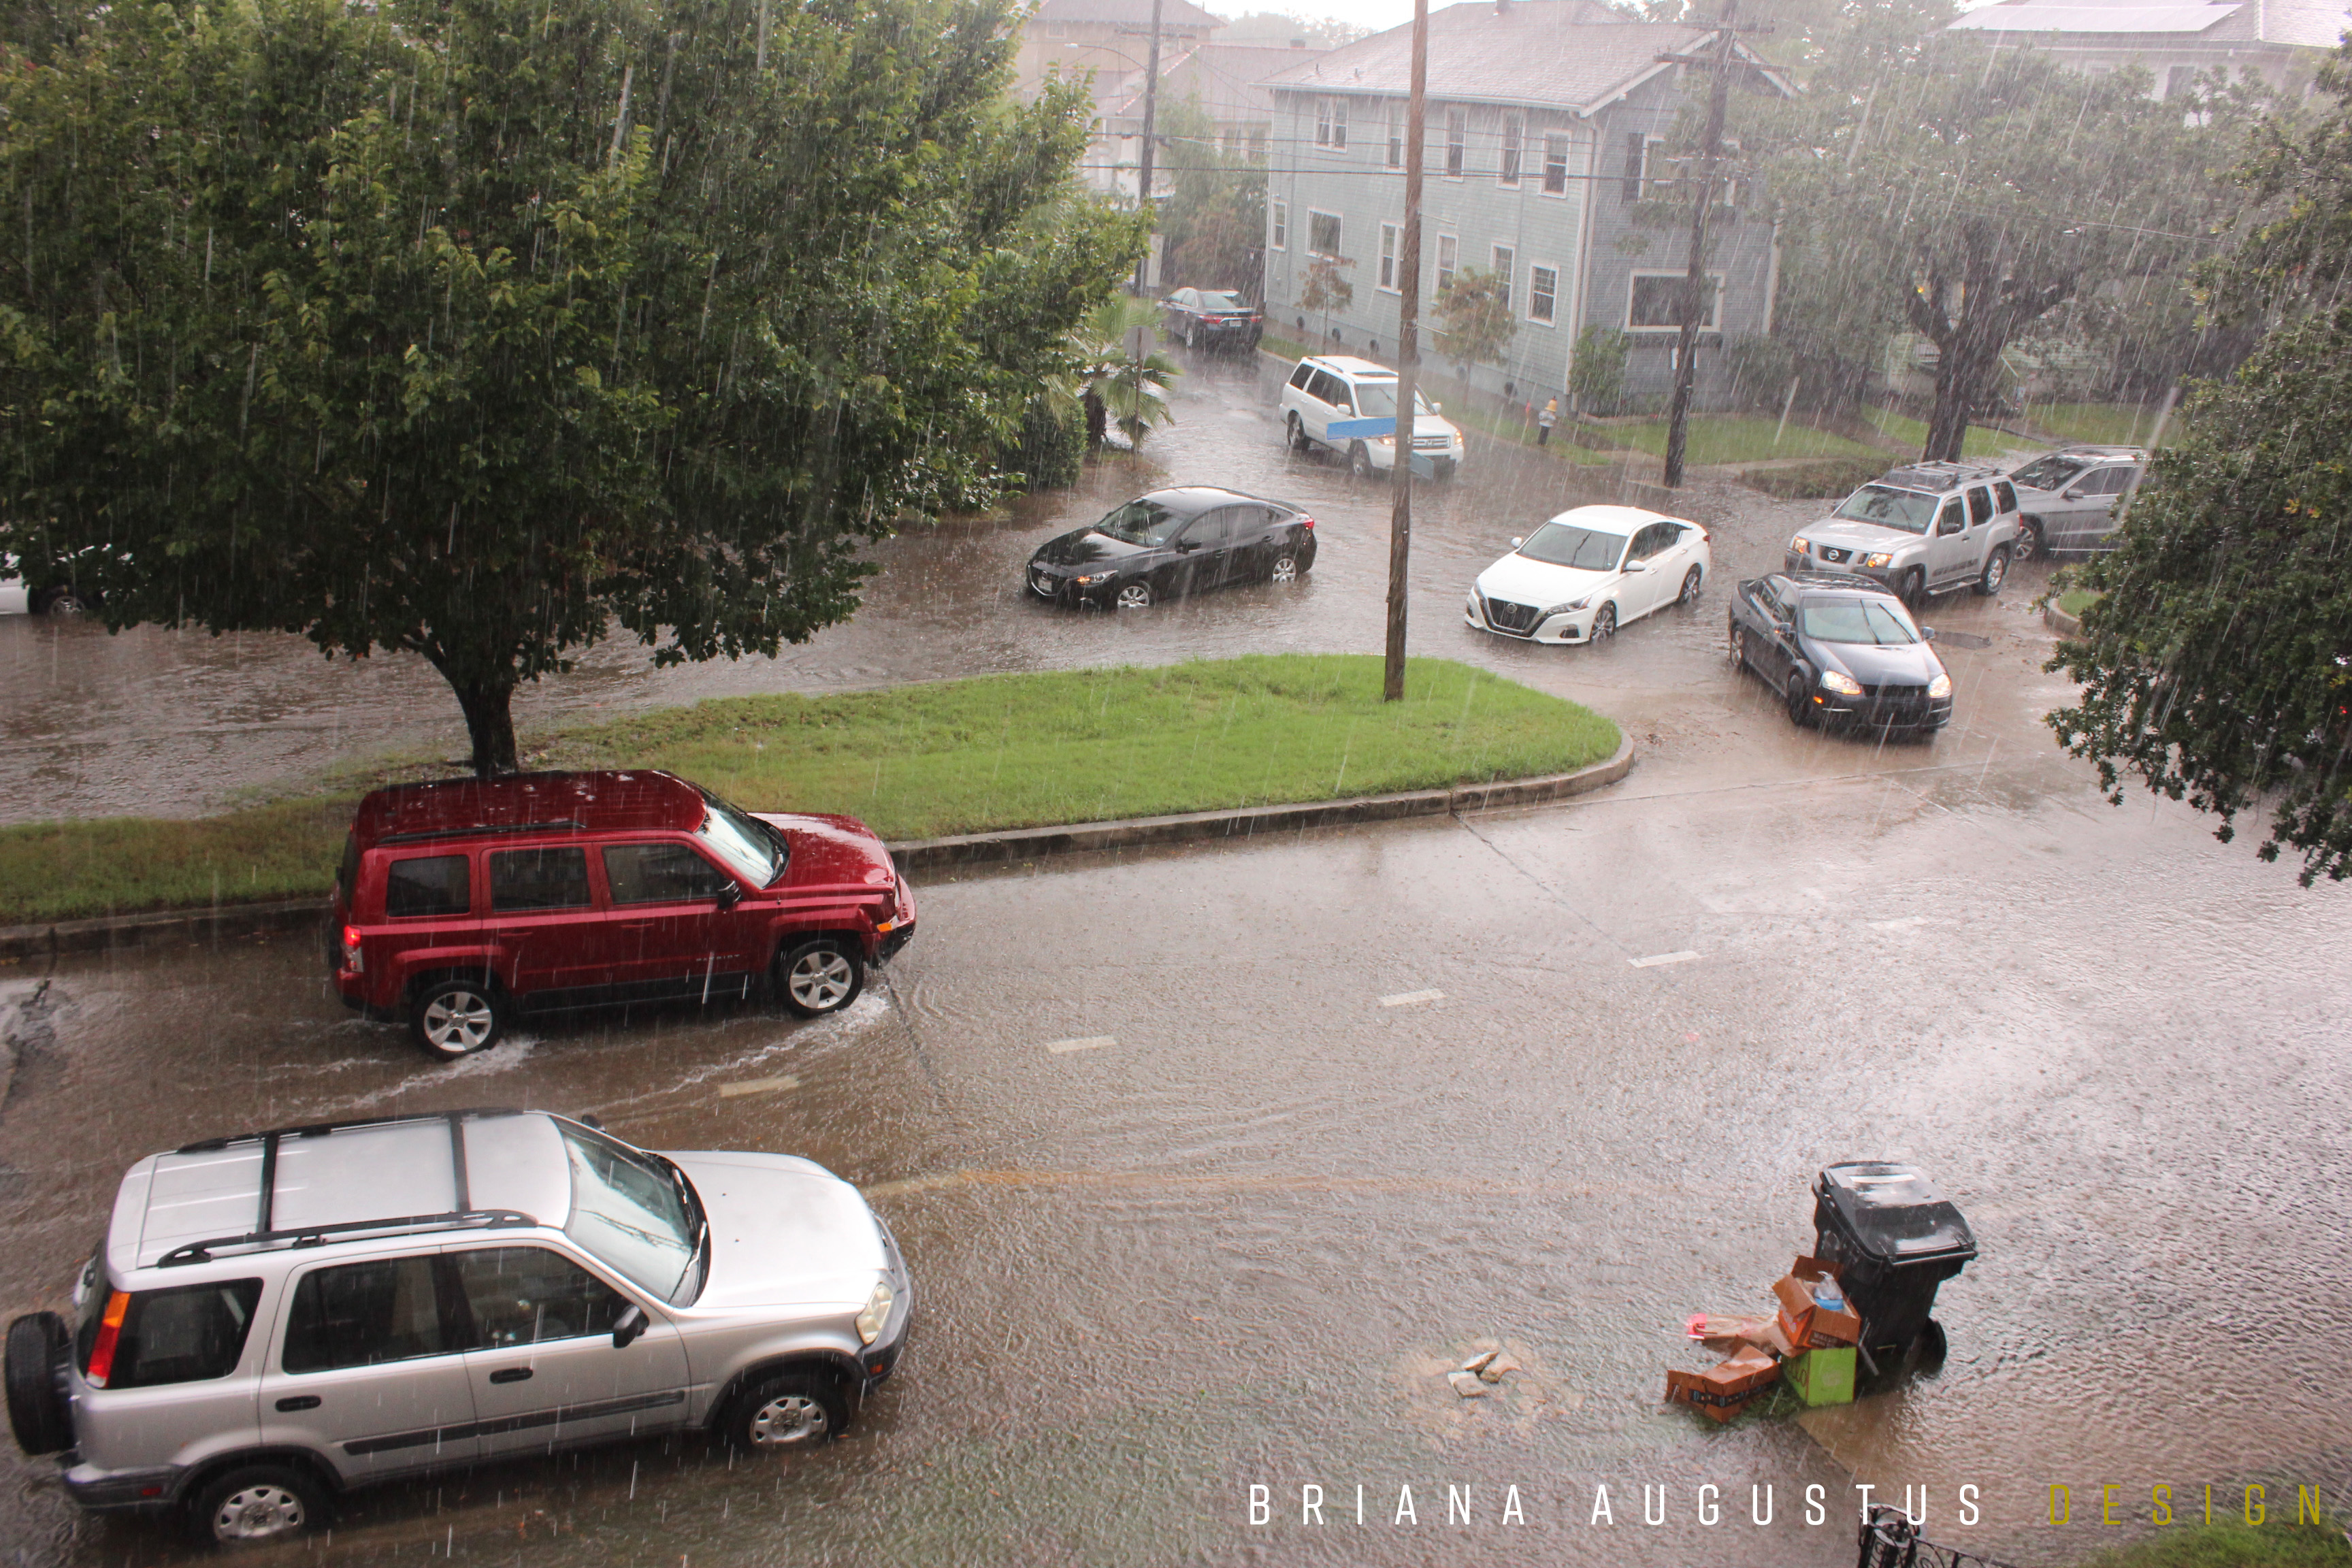 Cars reversing mid-intersection during early Monday evening traffic due to flooded roadway.